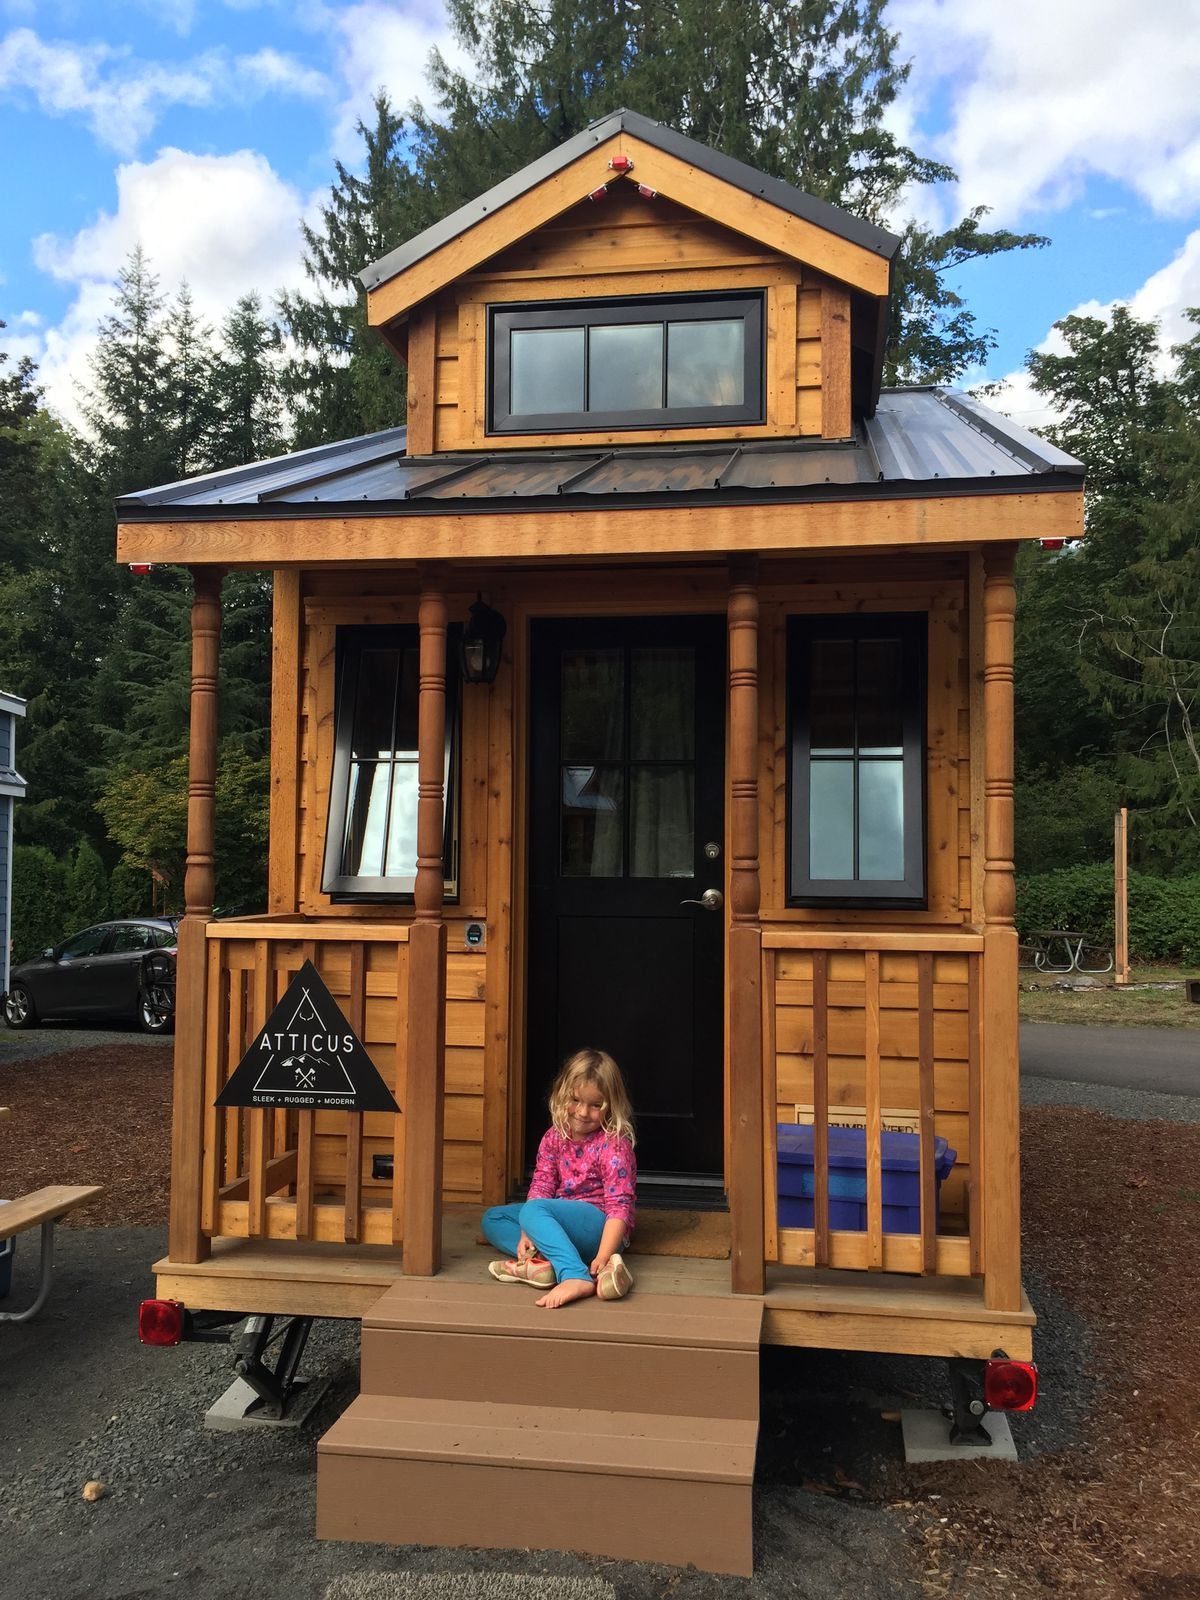 A young girl sits on the porch of a tiny home called Atticus.